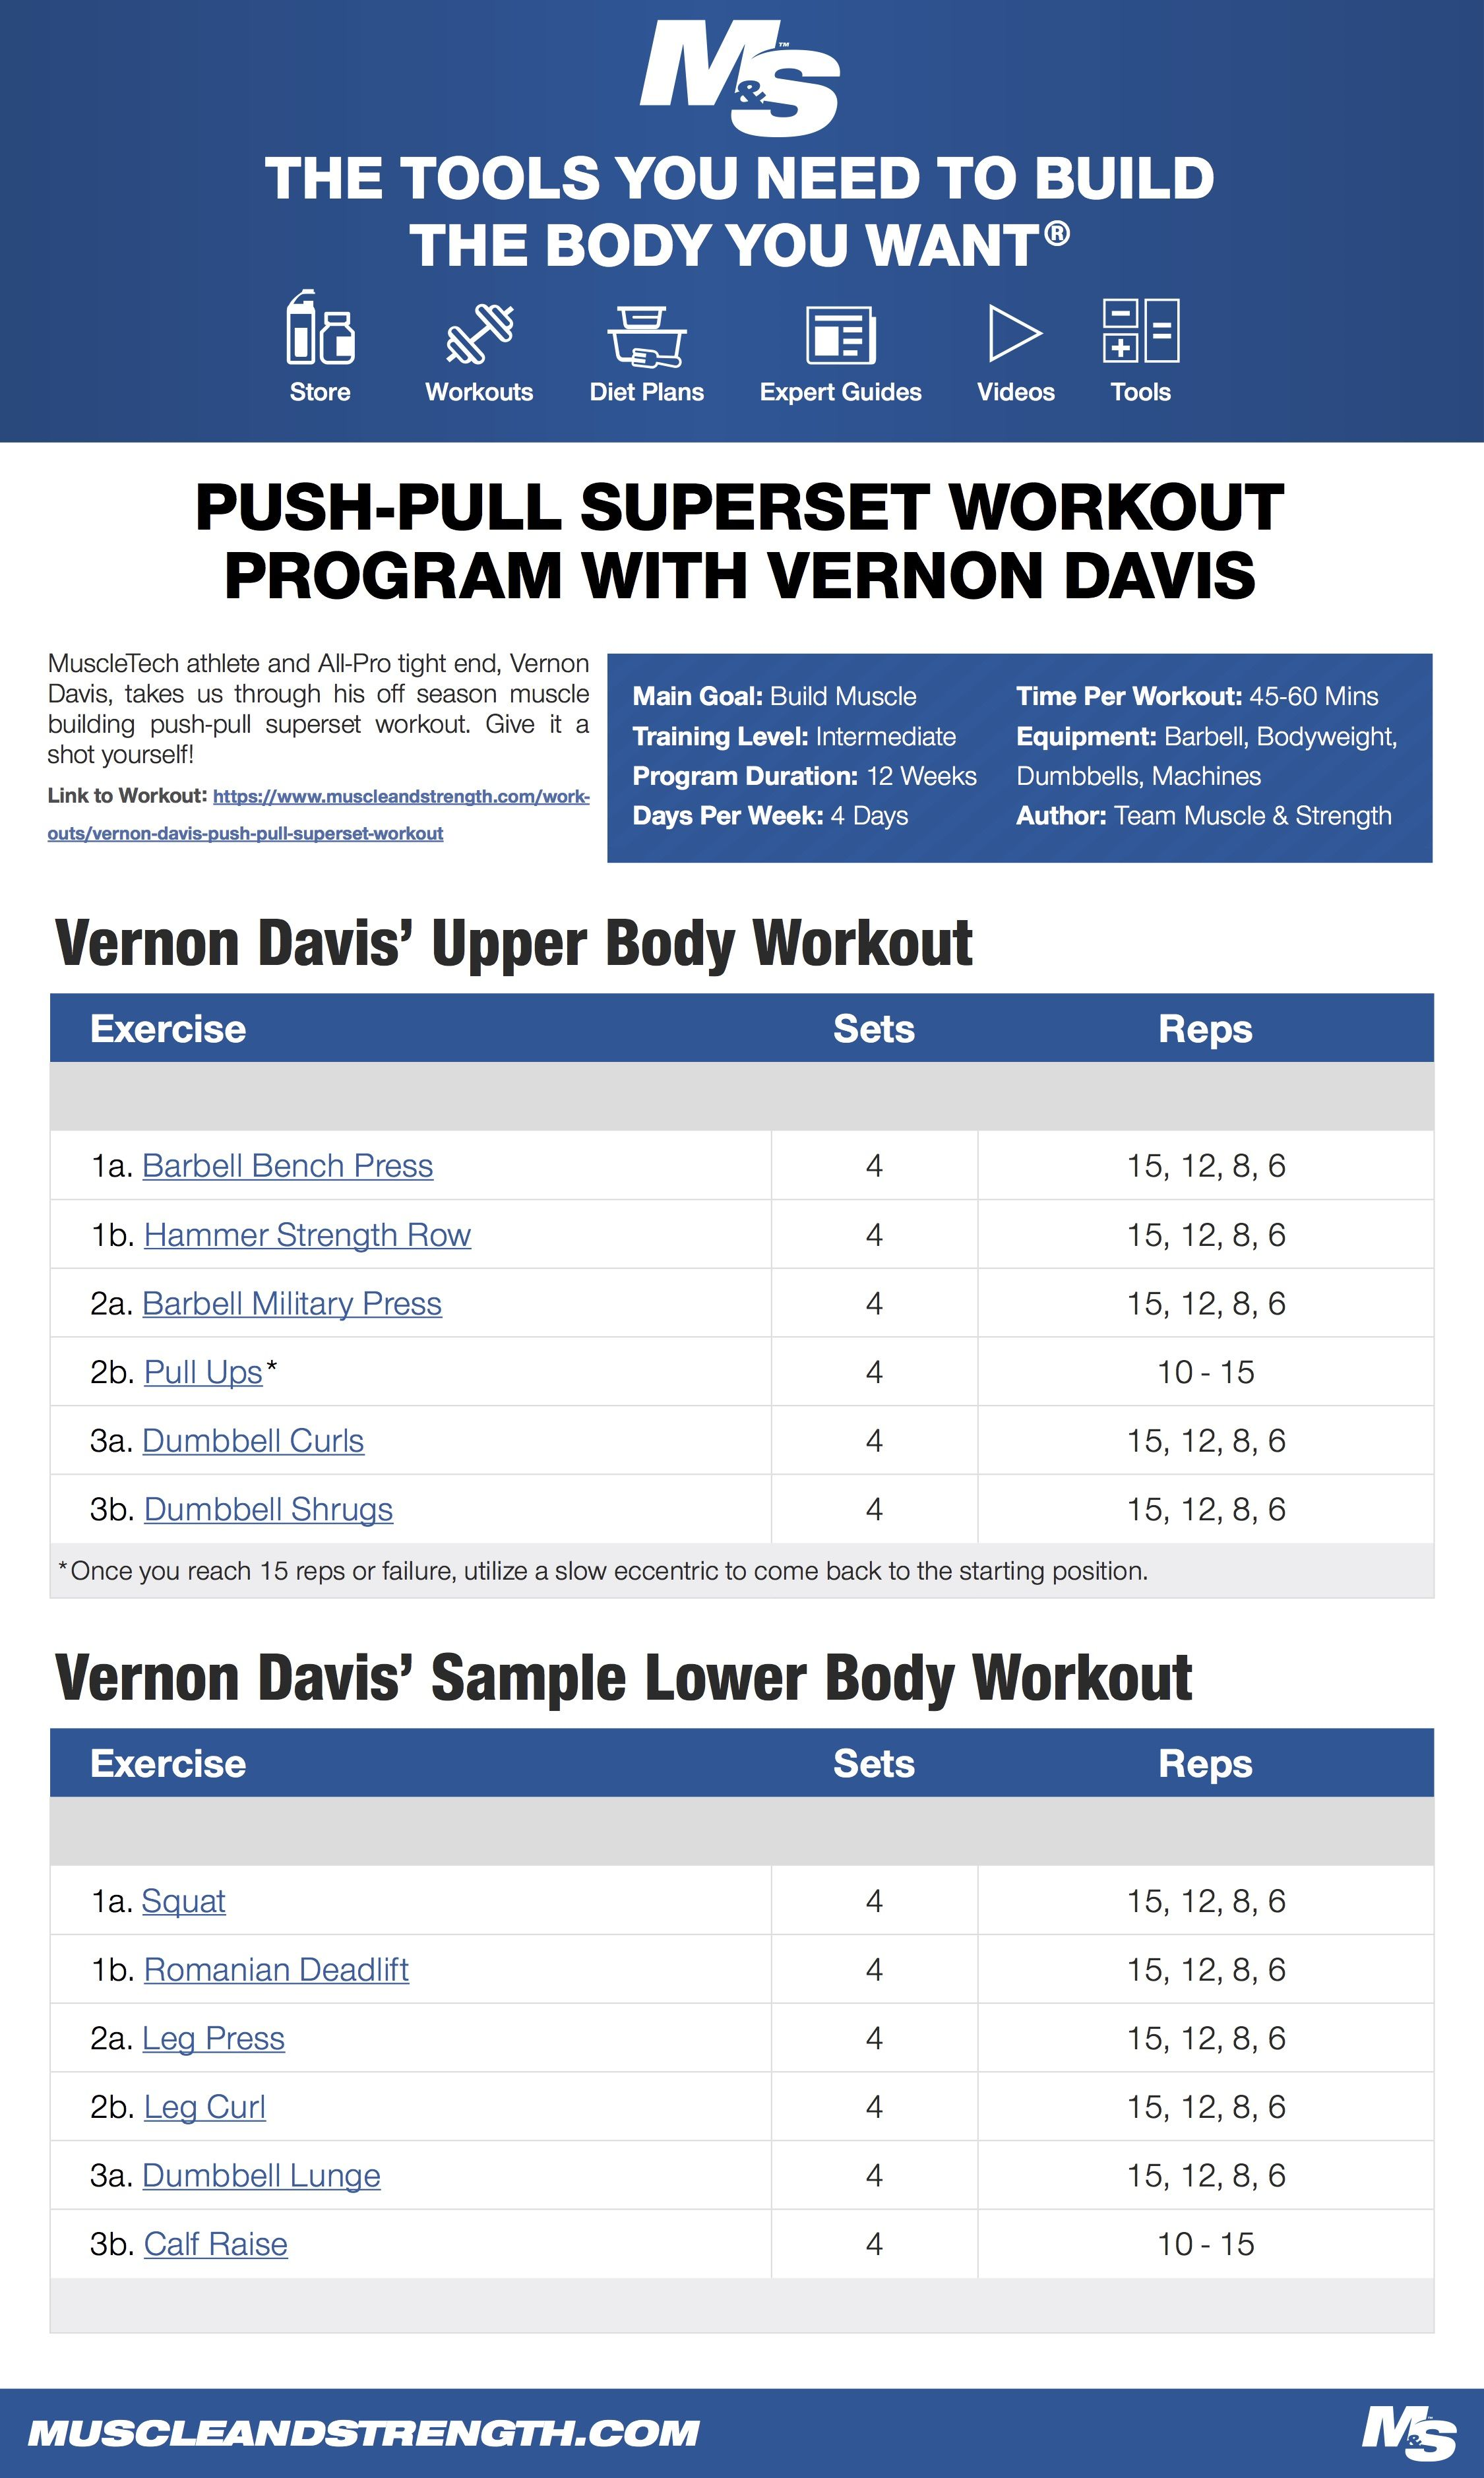 Muscletech Athlete And All Pro Tight End Vernon Davis Takes Us Through His Offseason Muscle Building Push Pull Sut Workout Give It A Shot Yourself